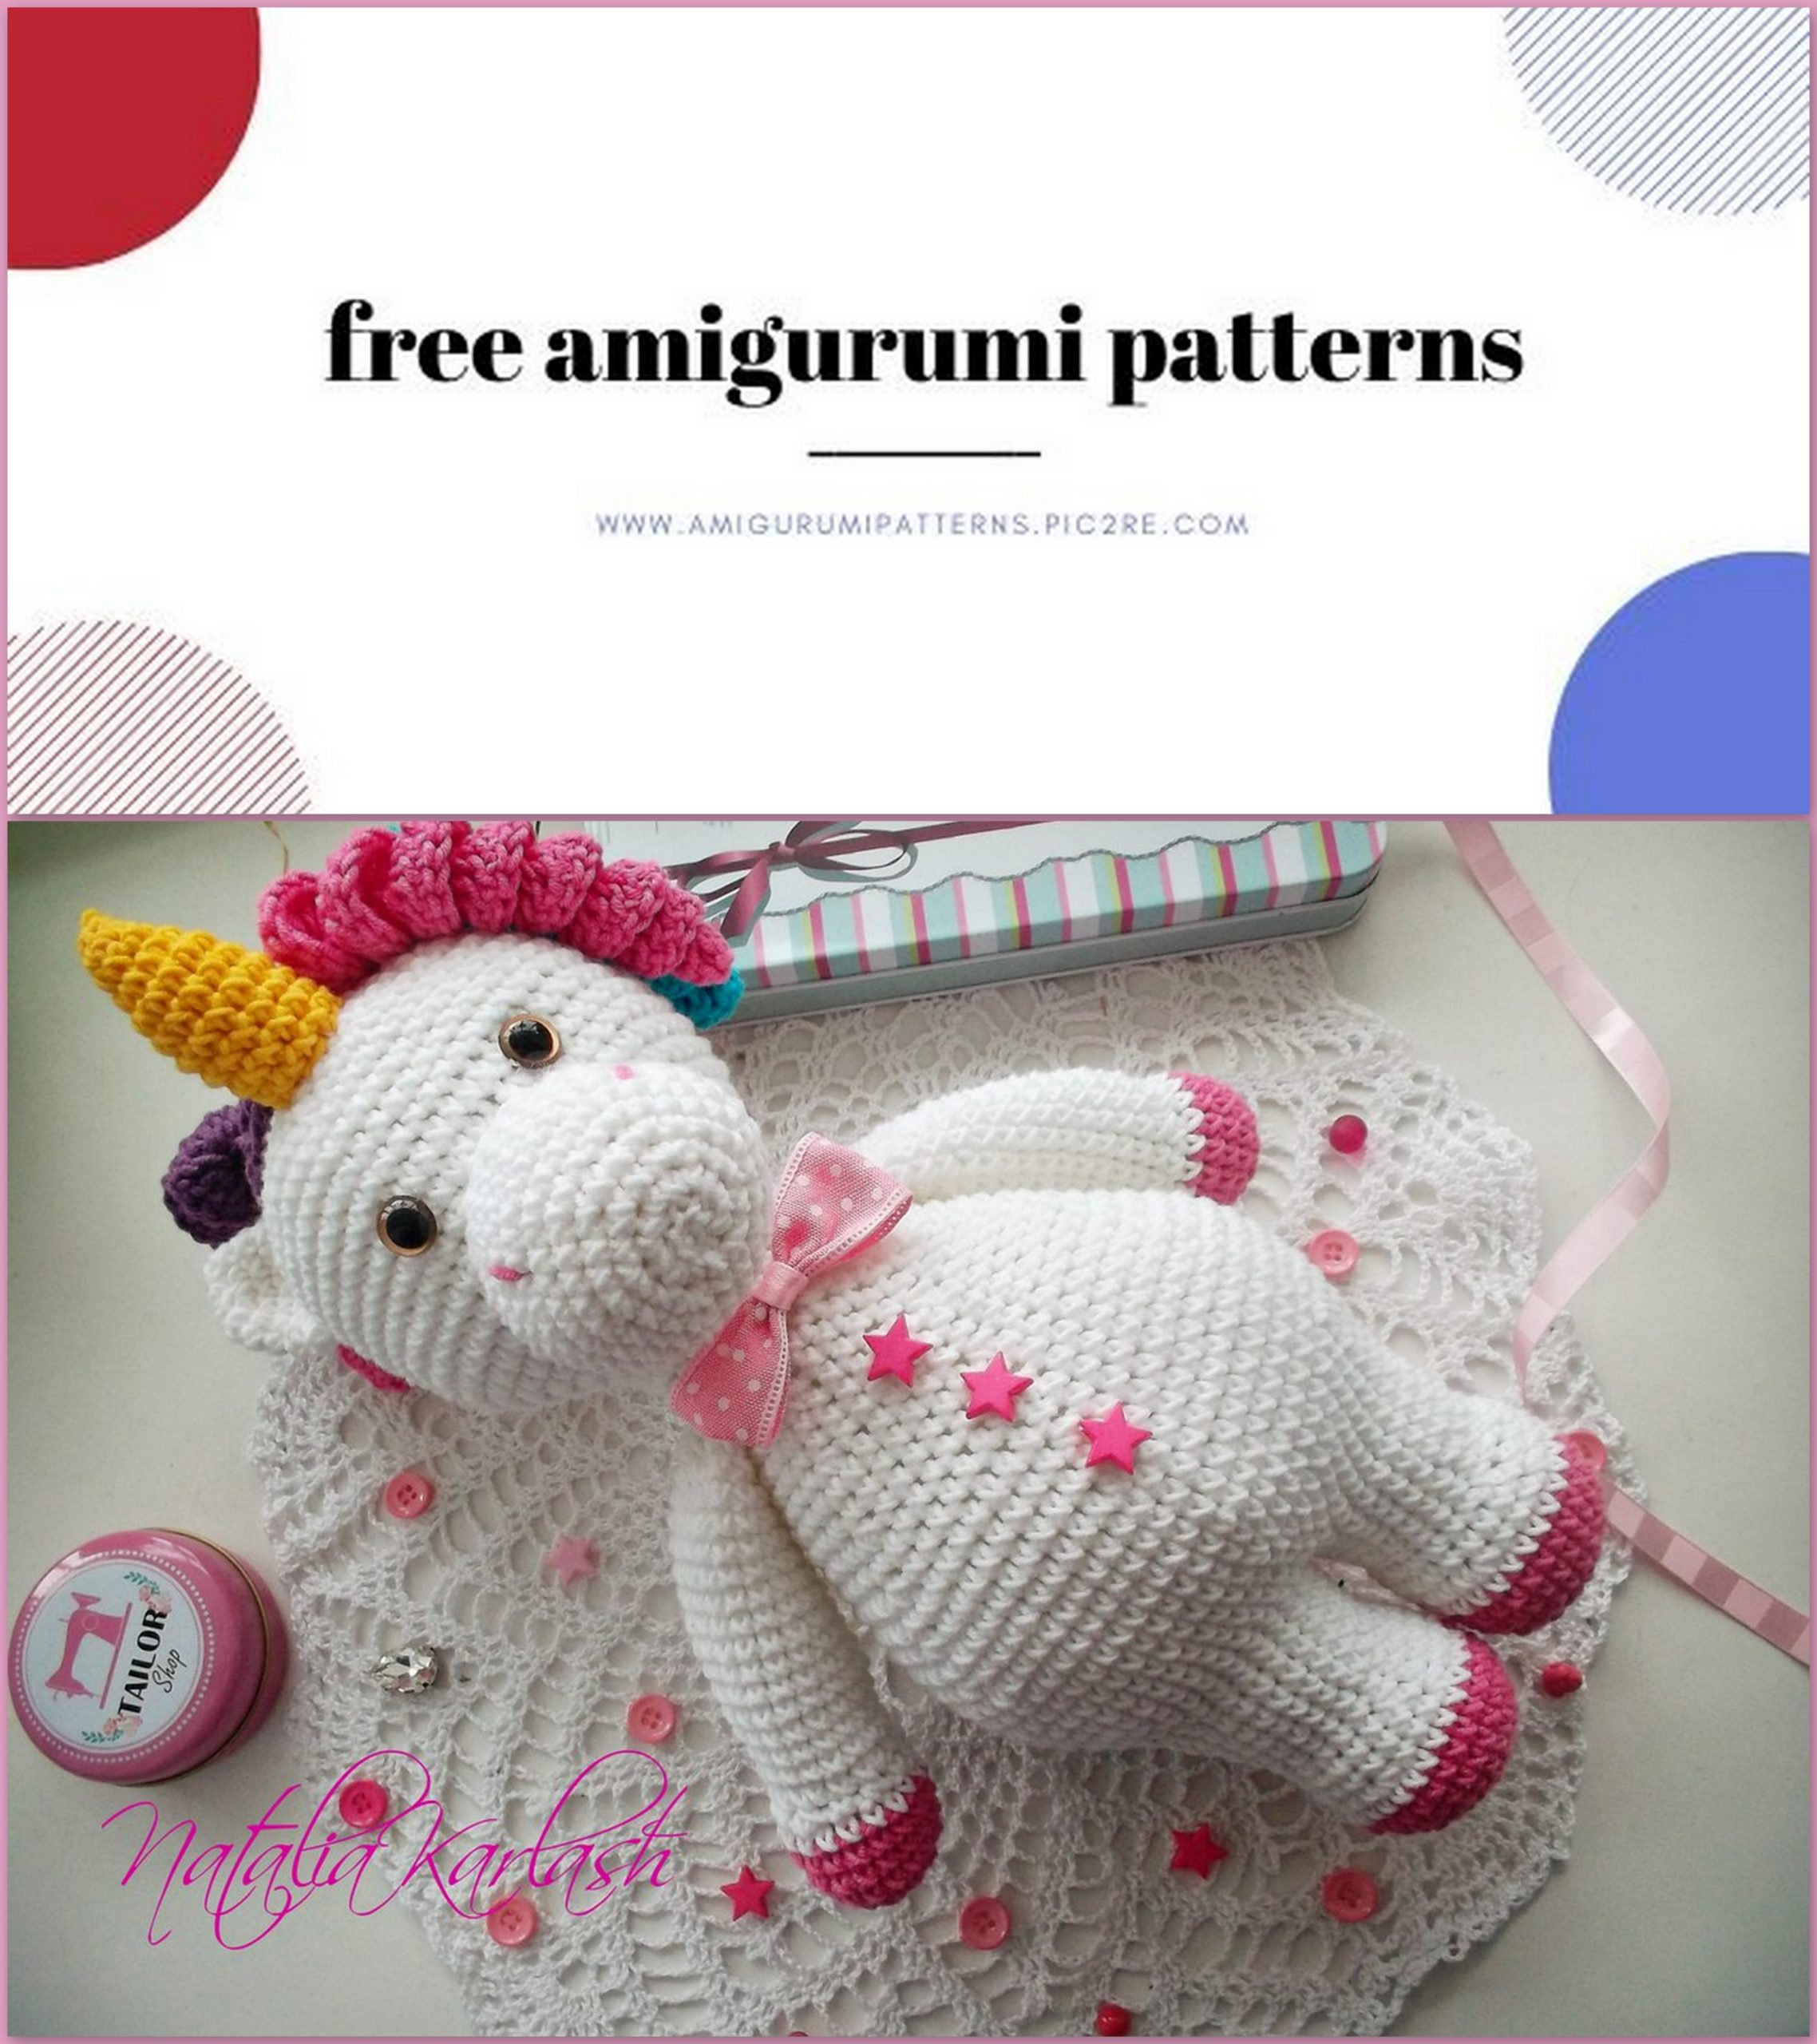 Free Crochet Unicorn Pattern - Red Ted Art - Make crafting with ...   2560x2276